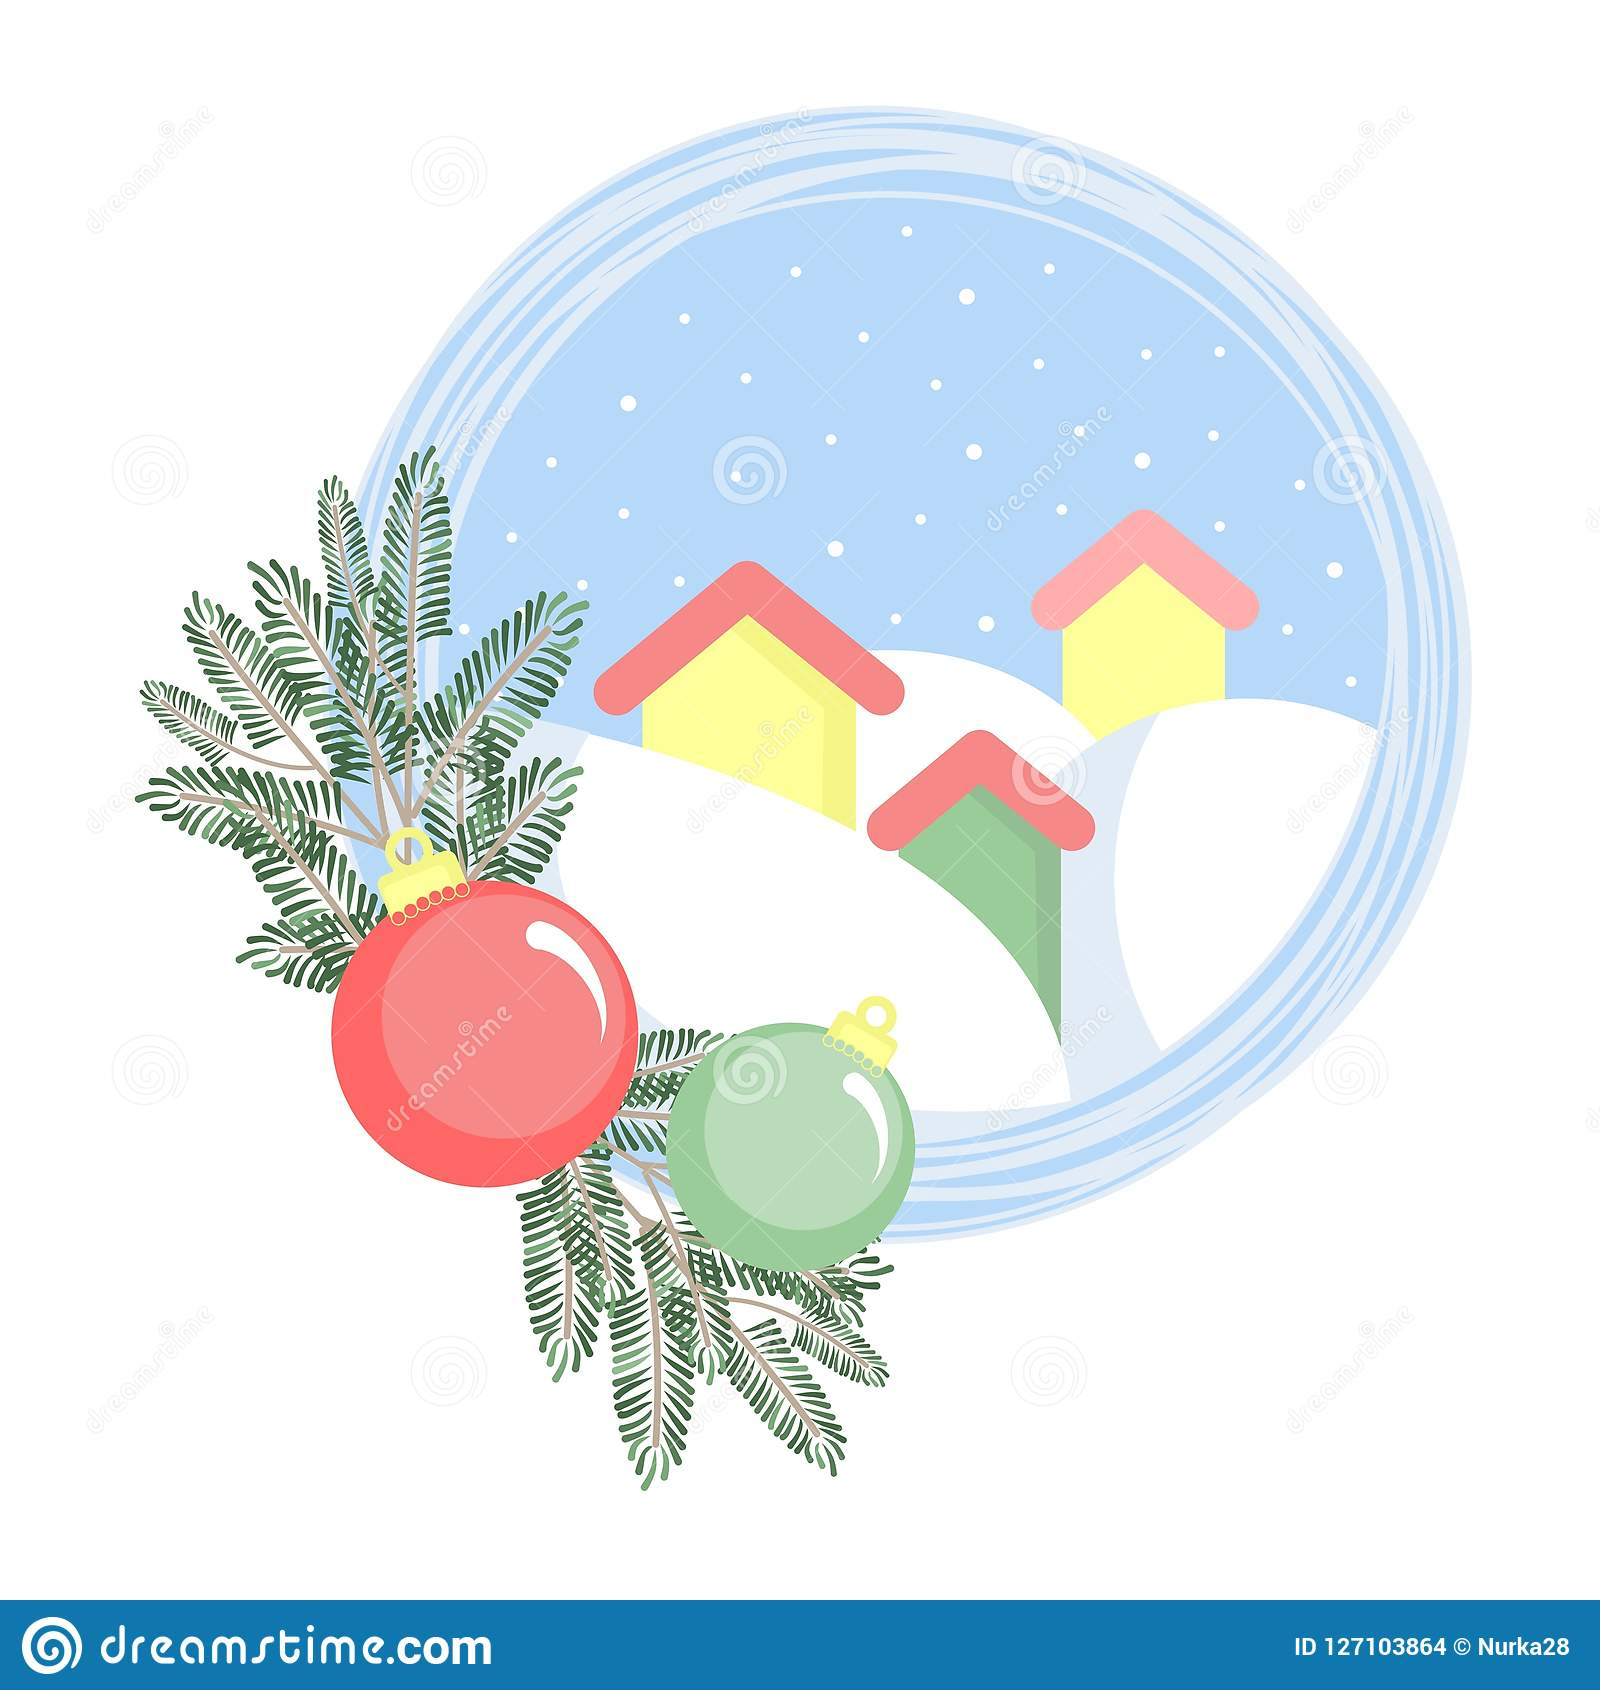 Three houses in snowdrifts with fir branches and Christmas balls.